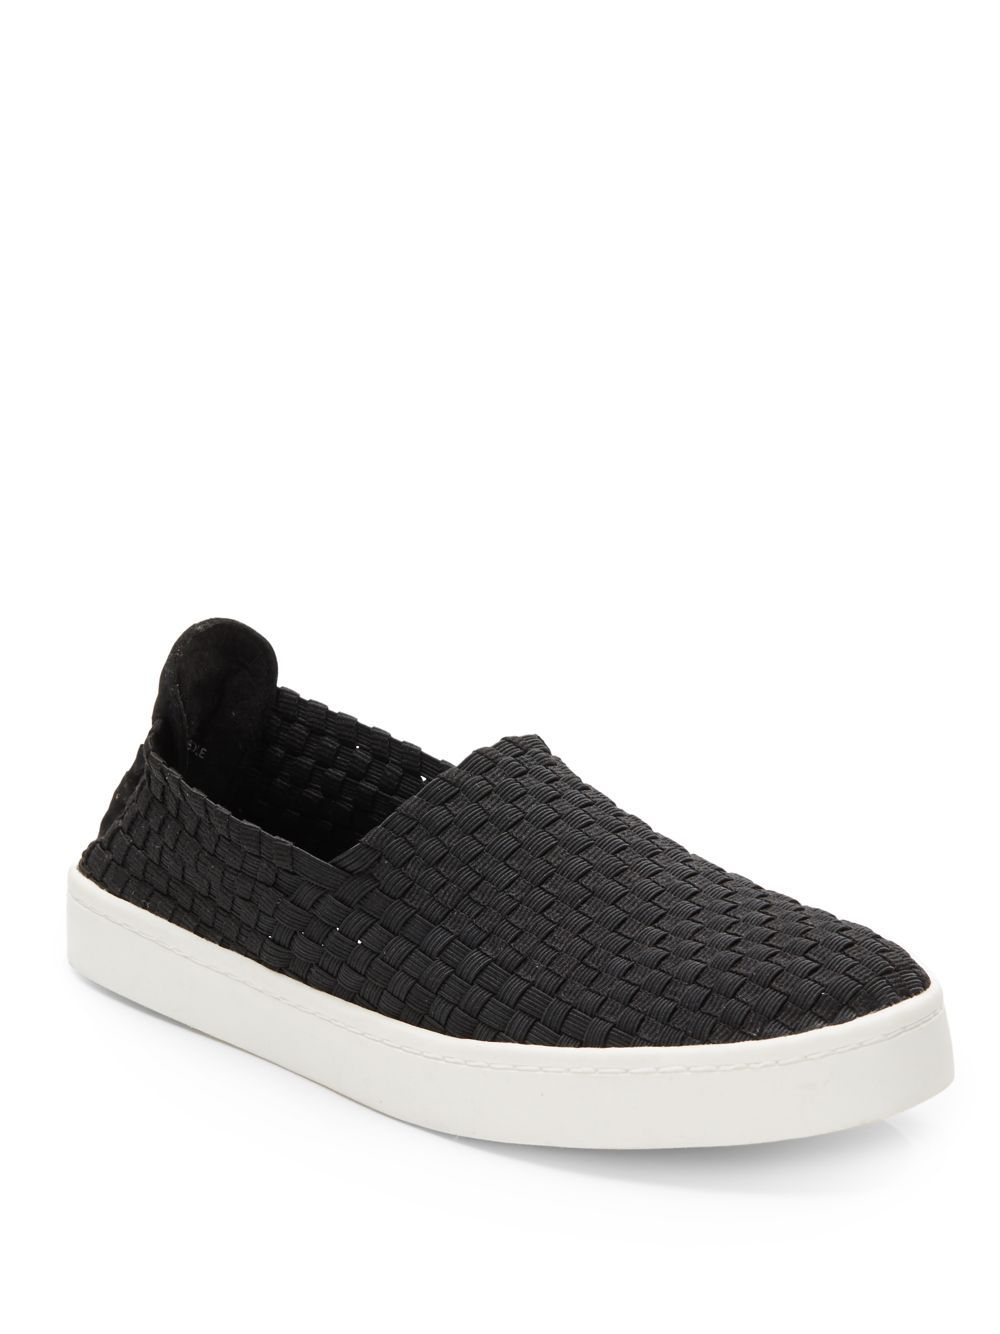 a6d56f2853a Steve Madden - Black Exx Woven Slip-on Sneakers